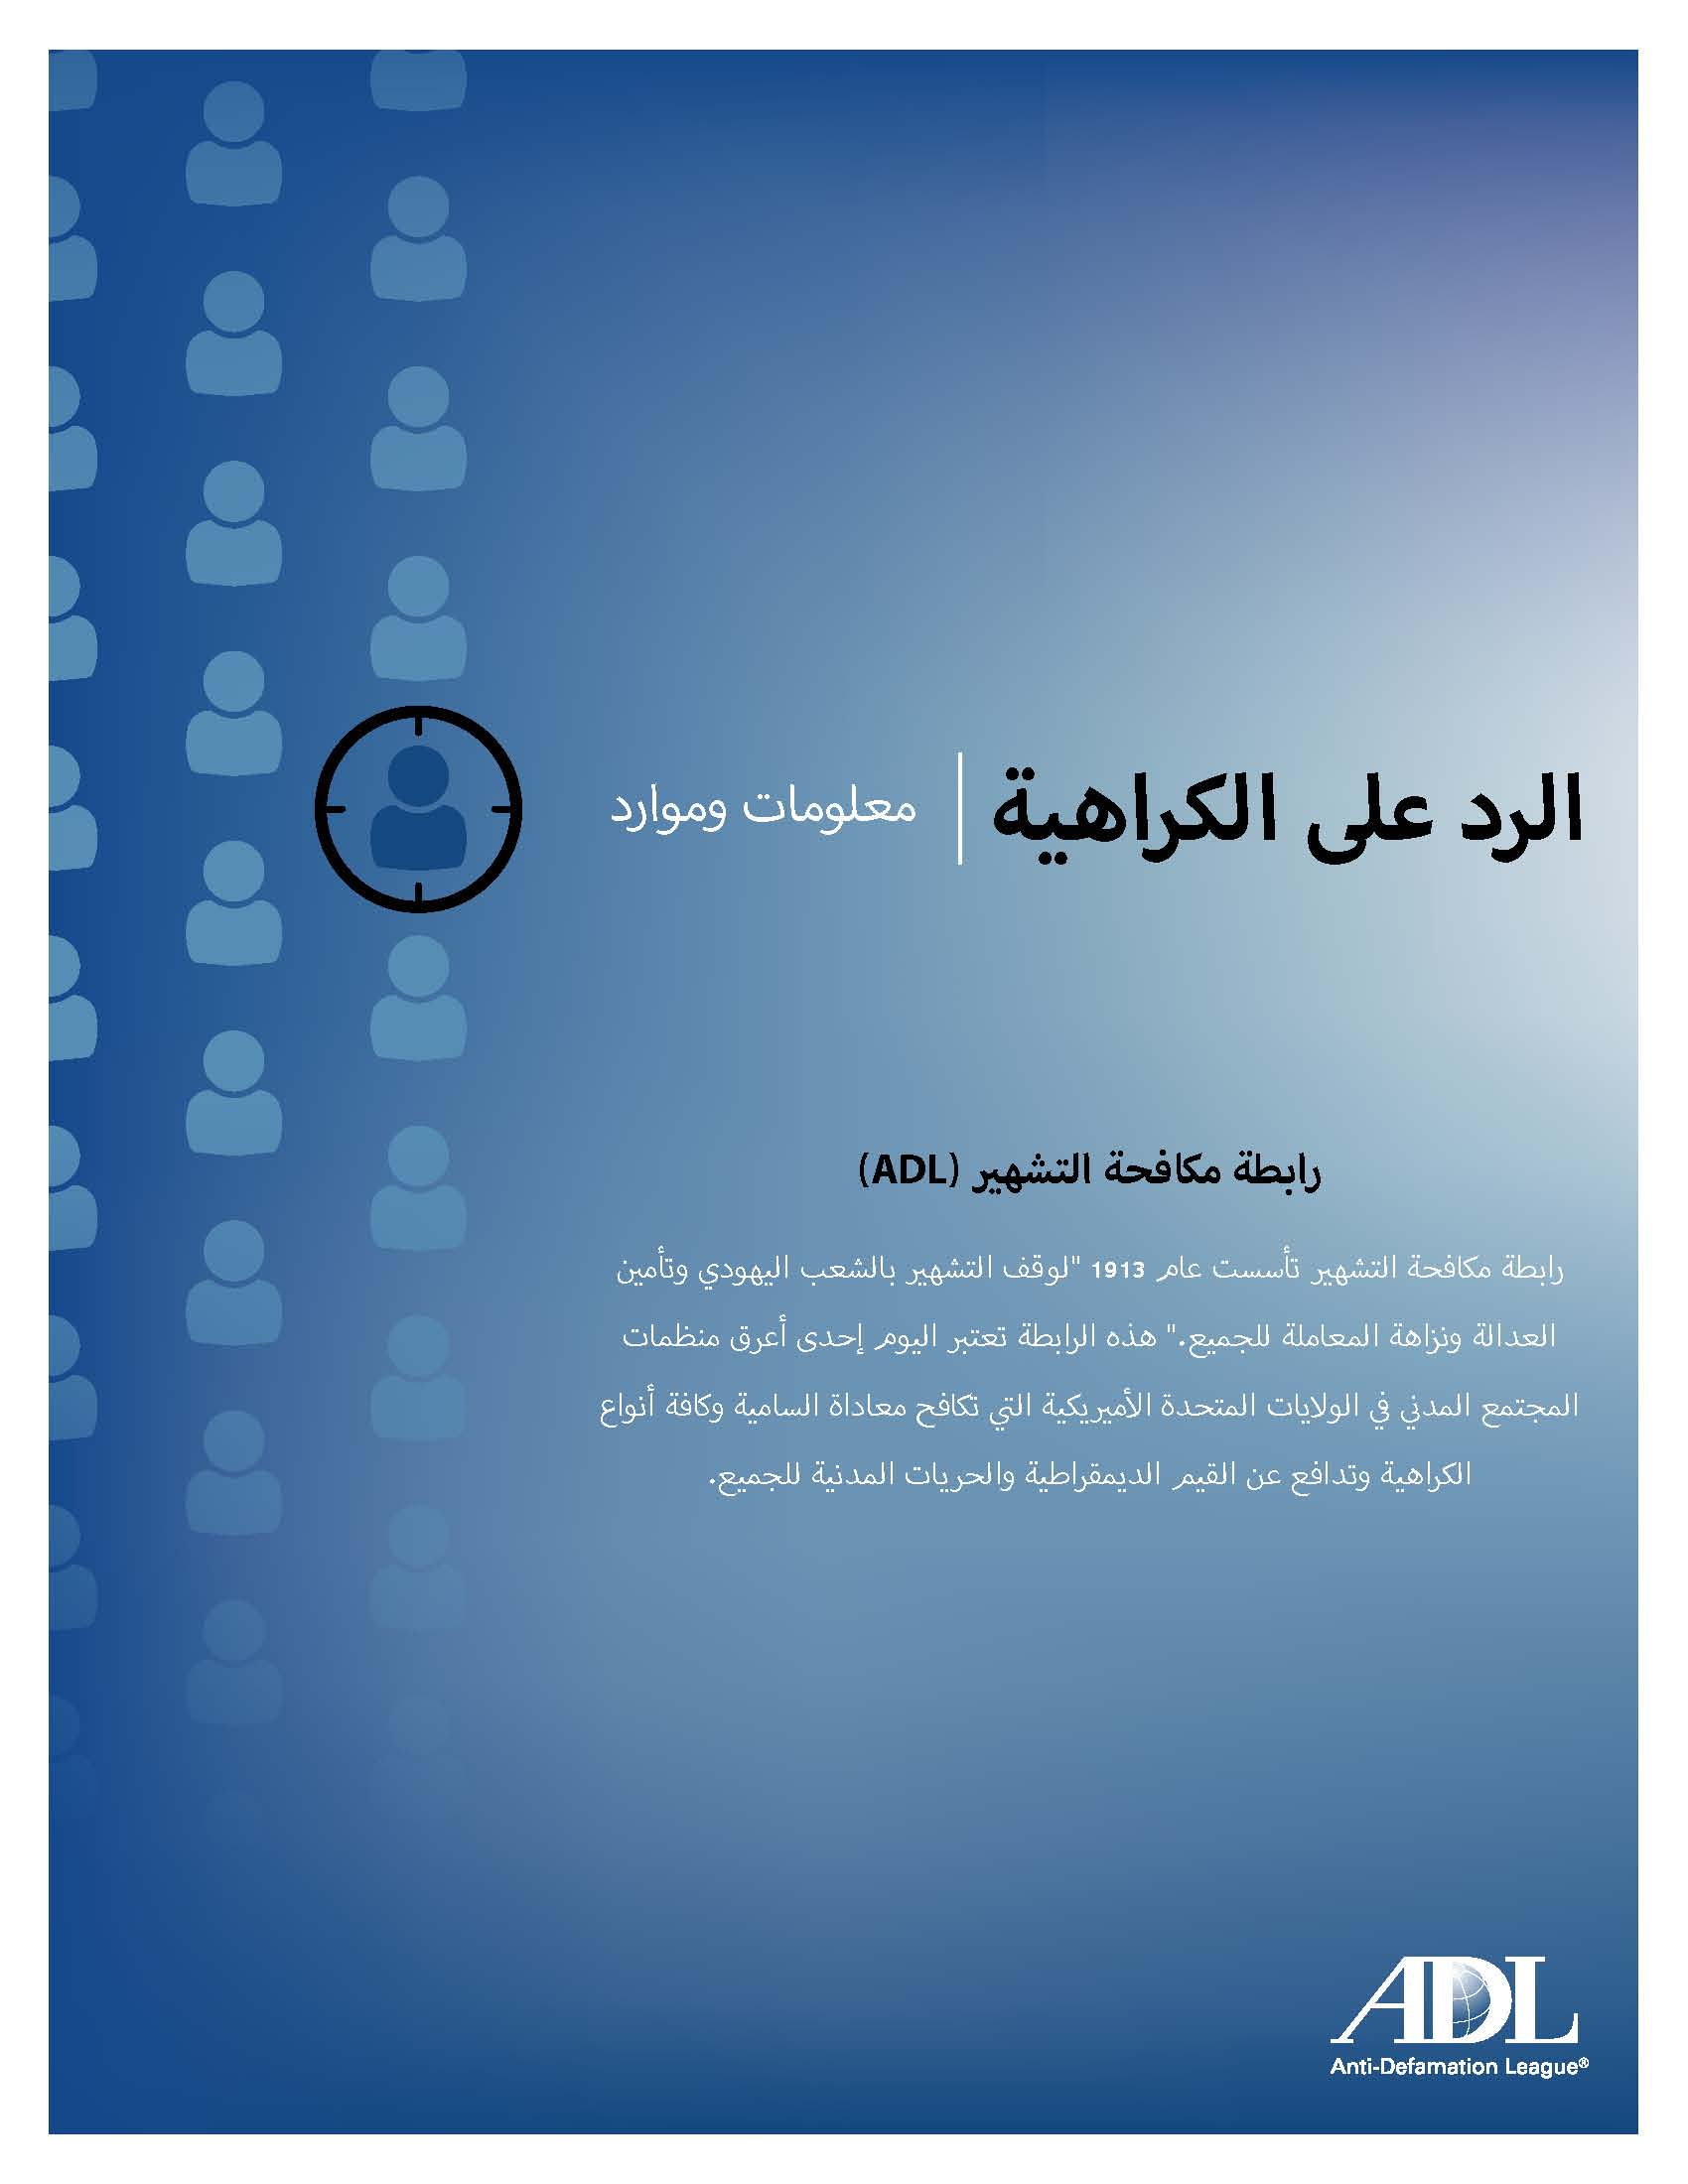 Responding to Hate: Information and Resources - Arabic Version THUMBNAIL